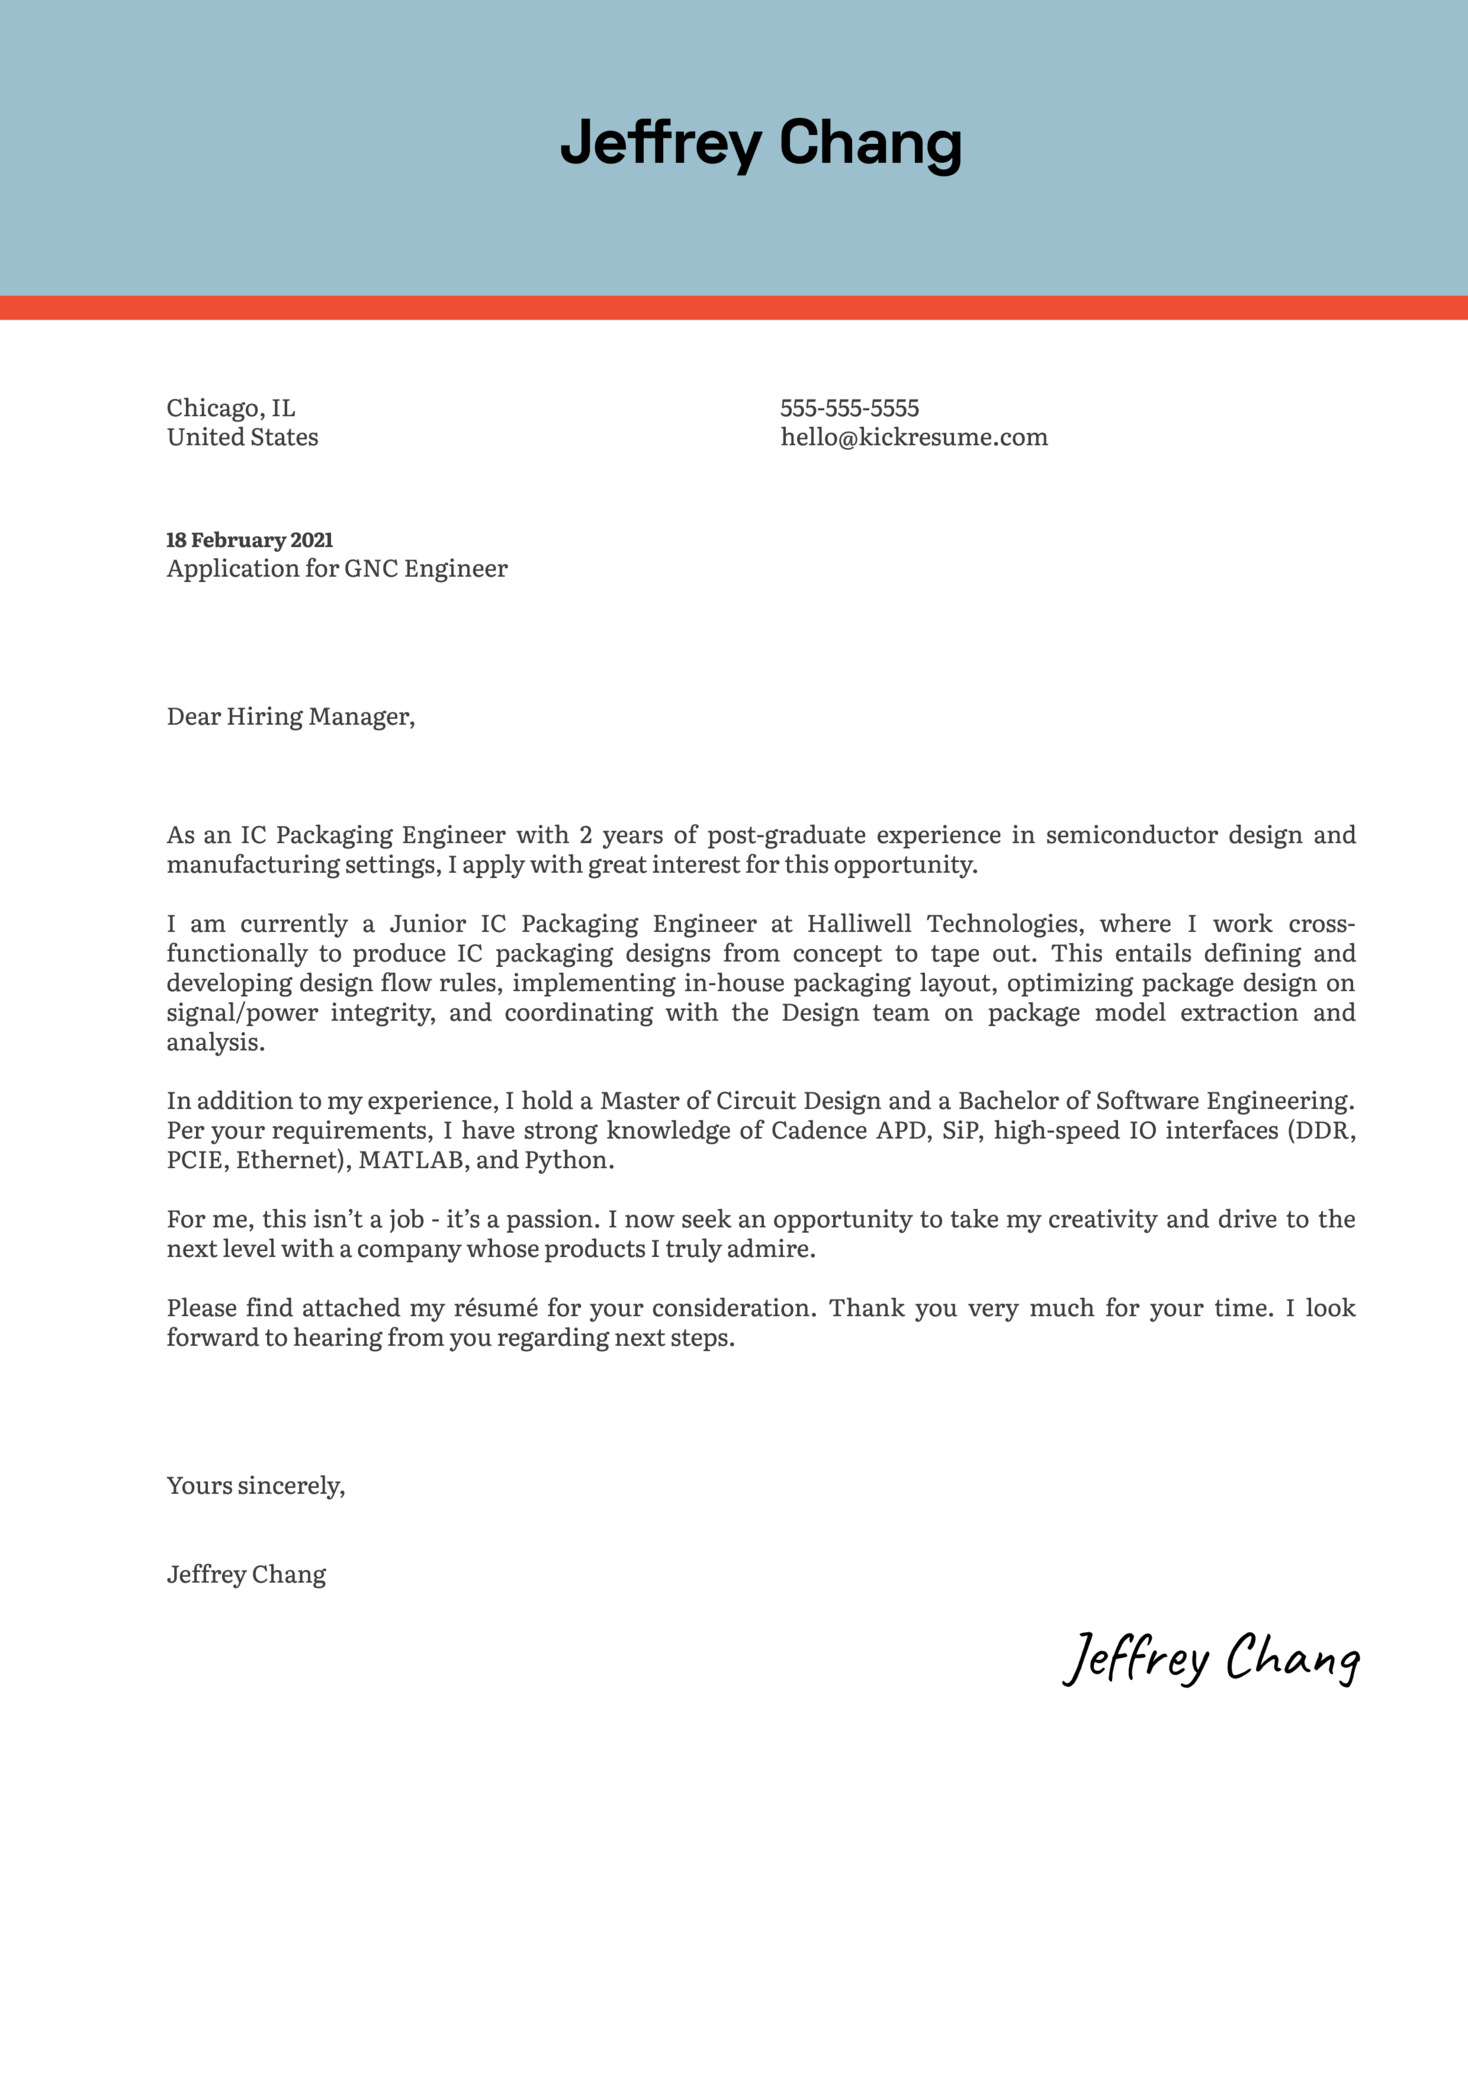 IC Packaging Engineer Cover Letter Template